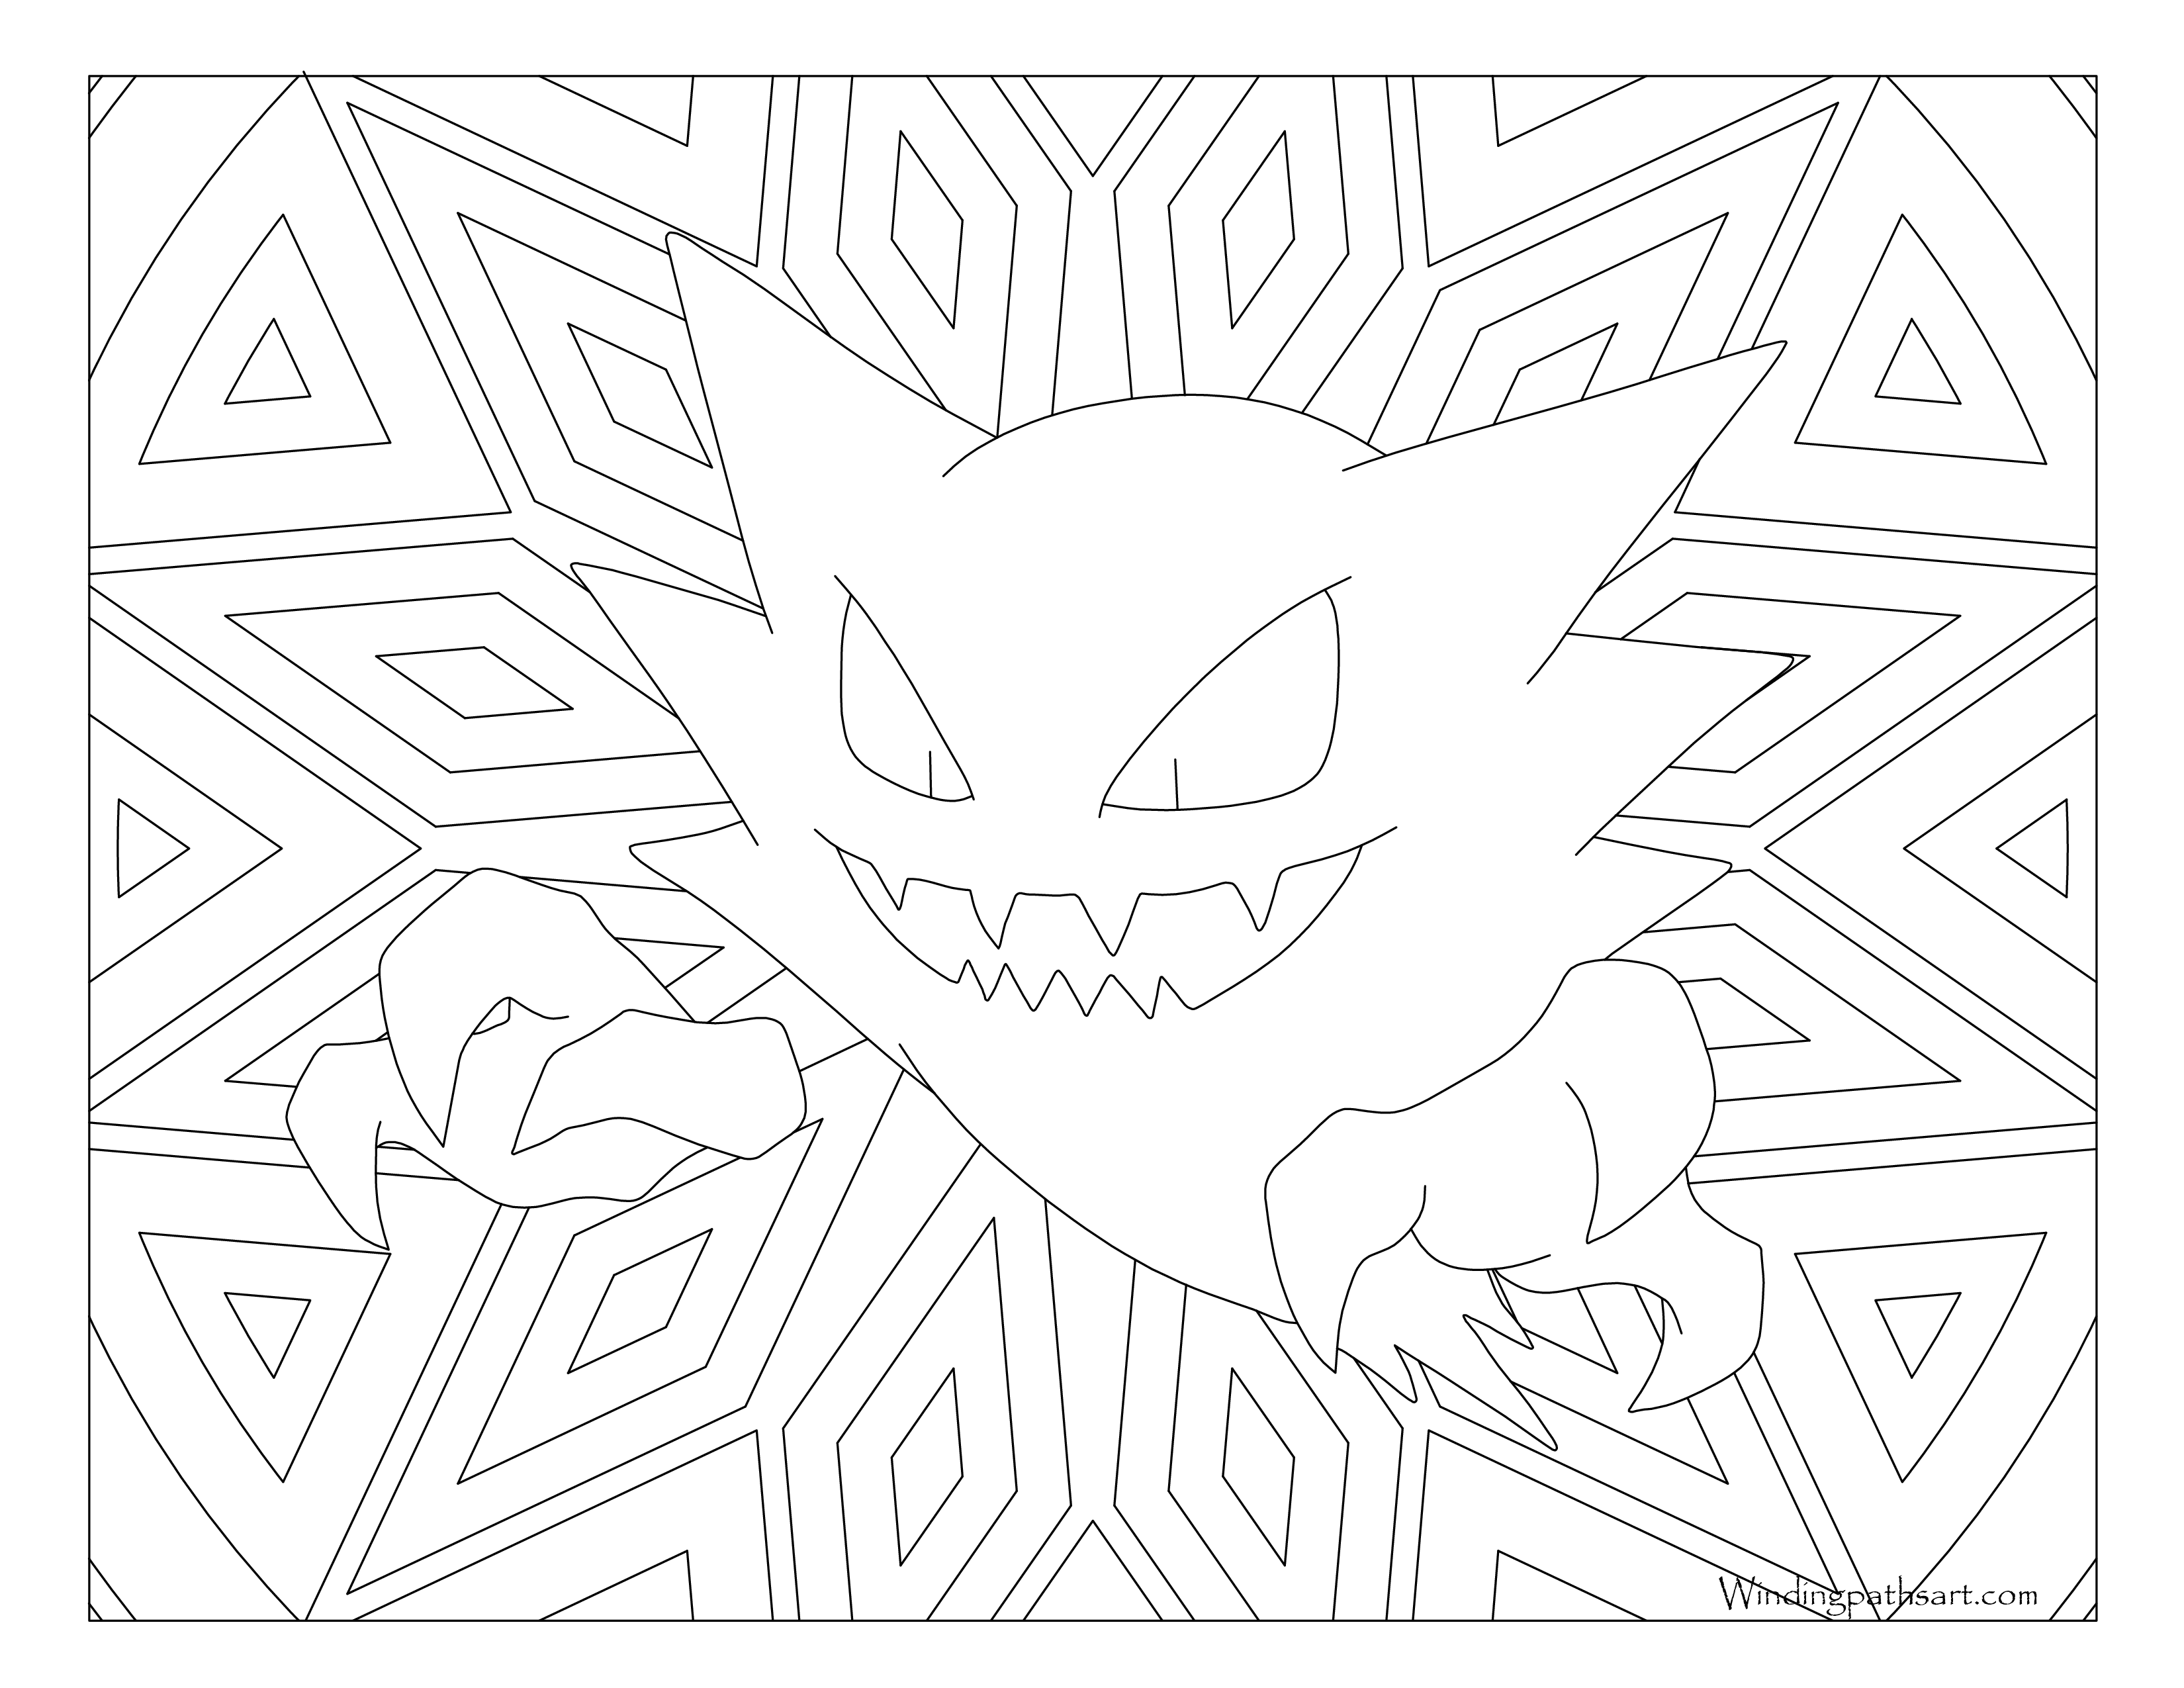 Haunter drawing line. Pokemon coloring page